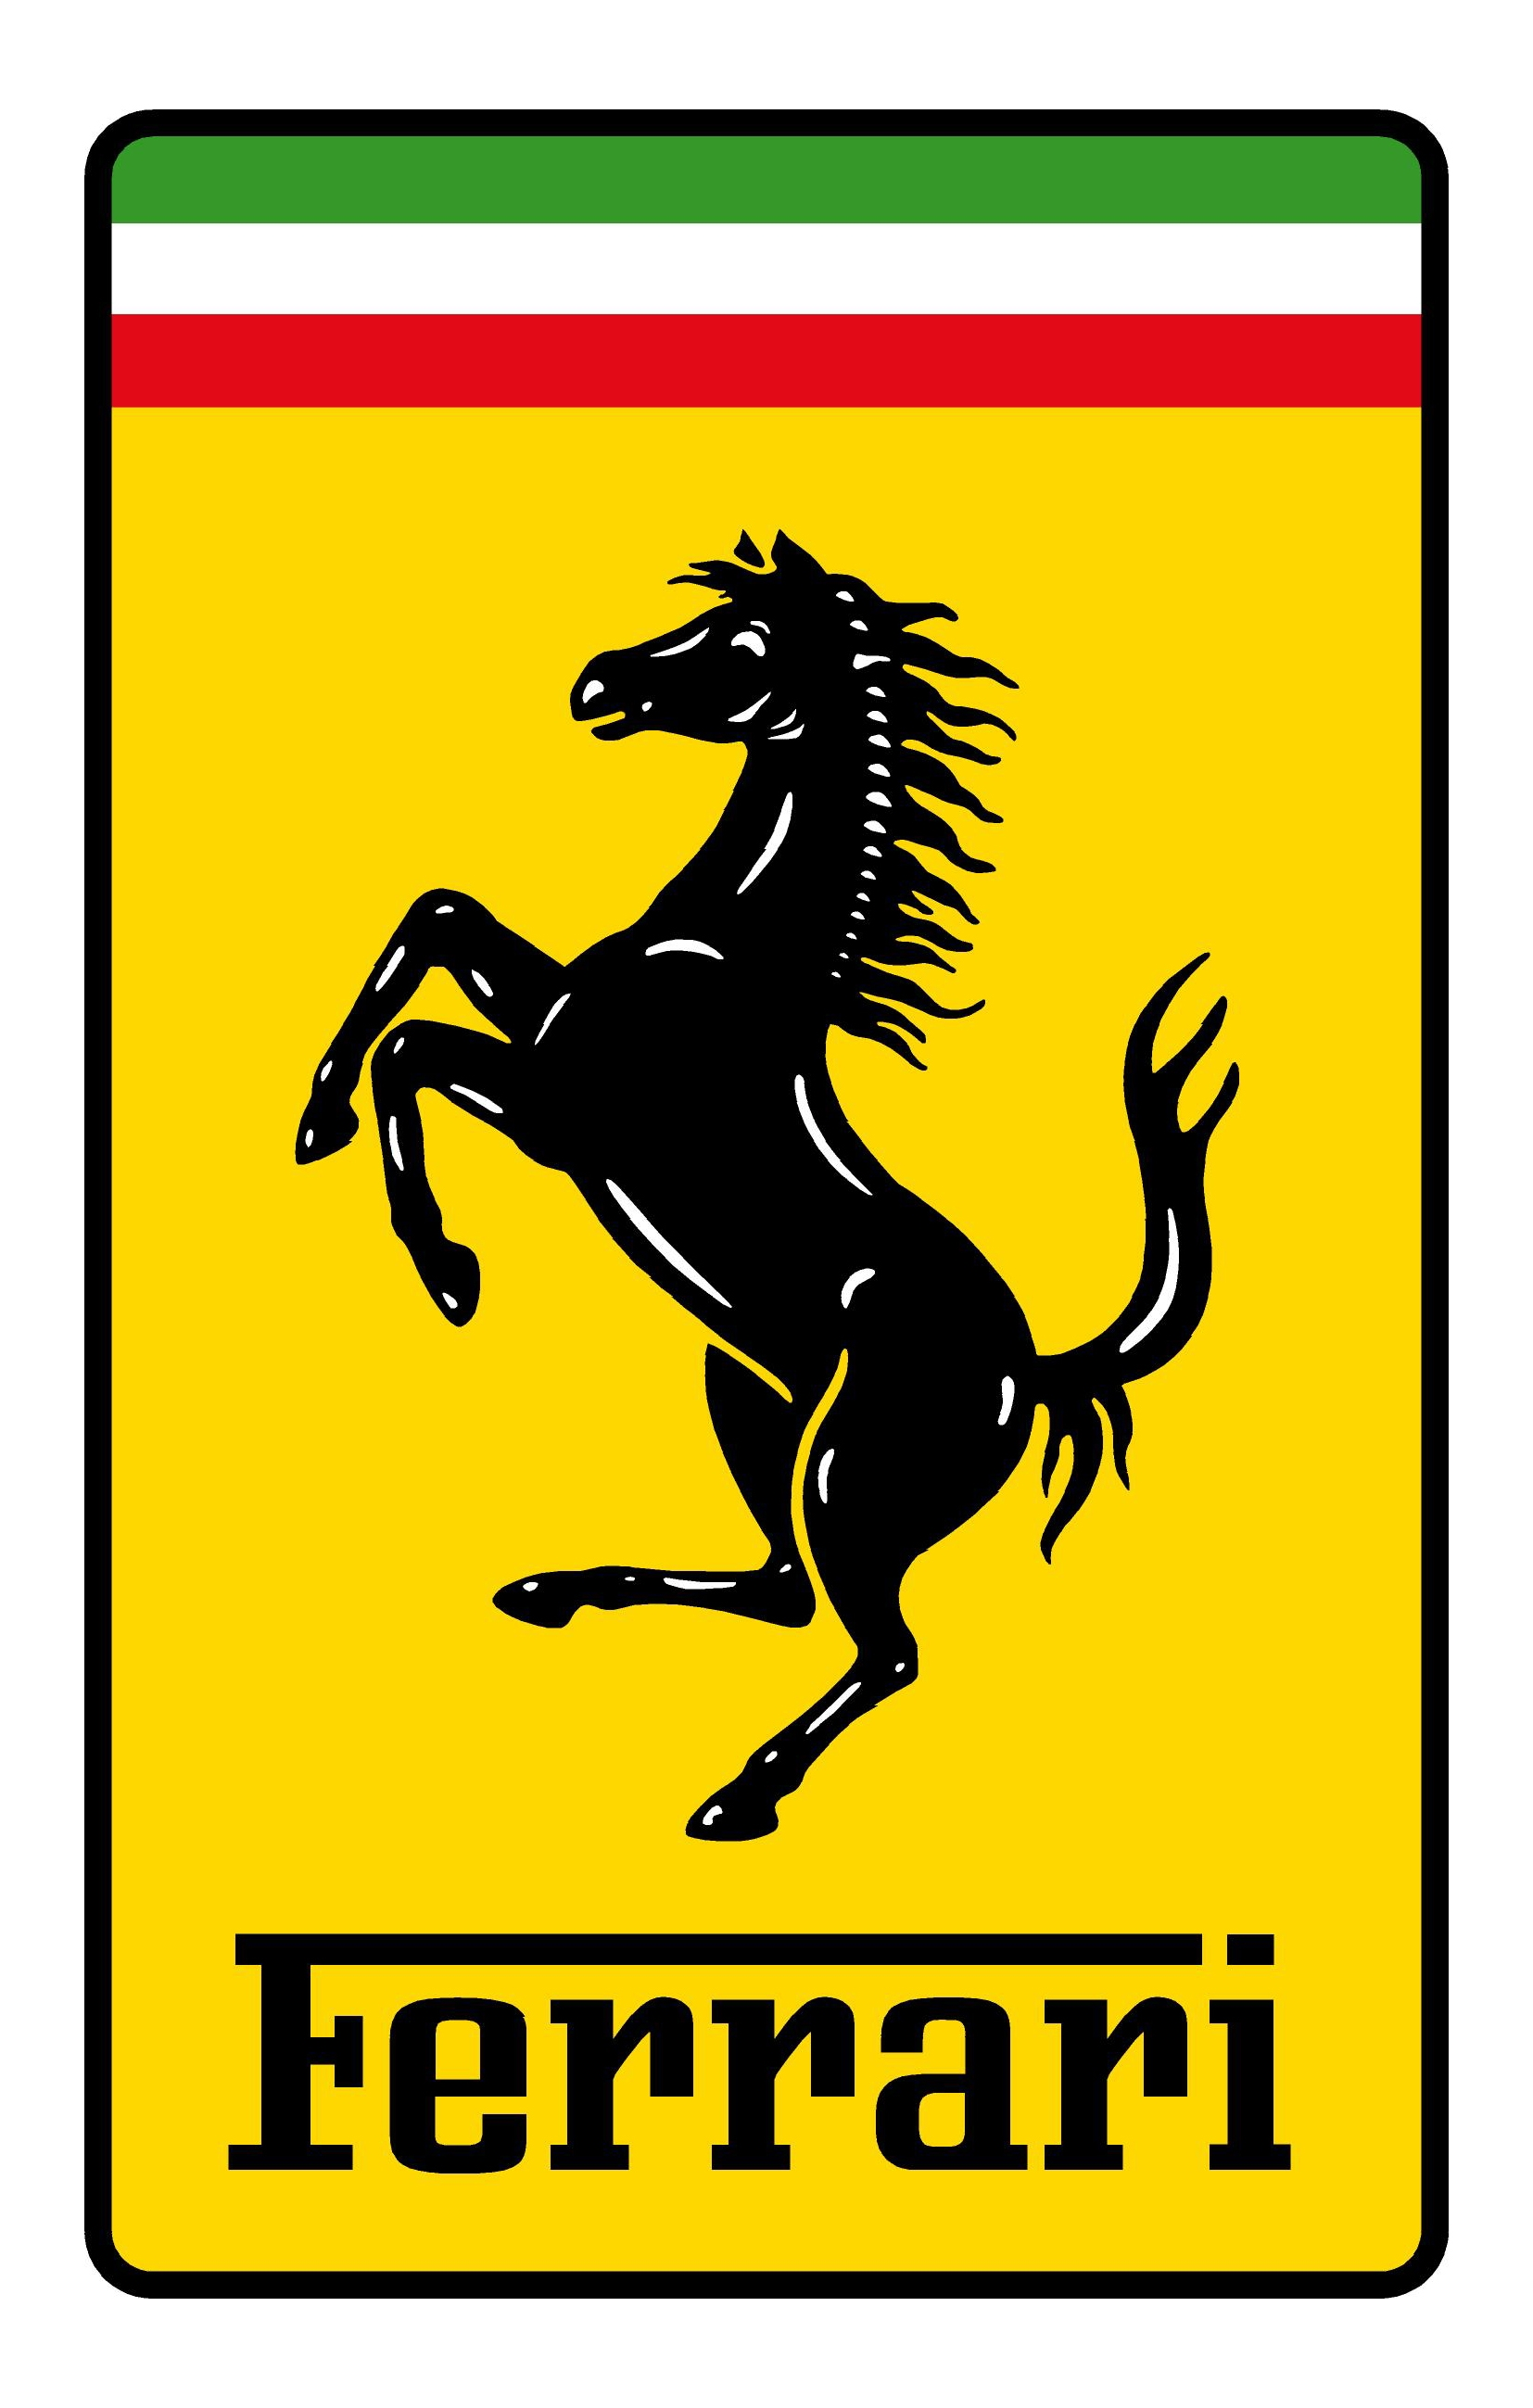 Ferrari logo was the